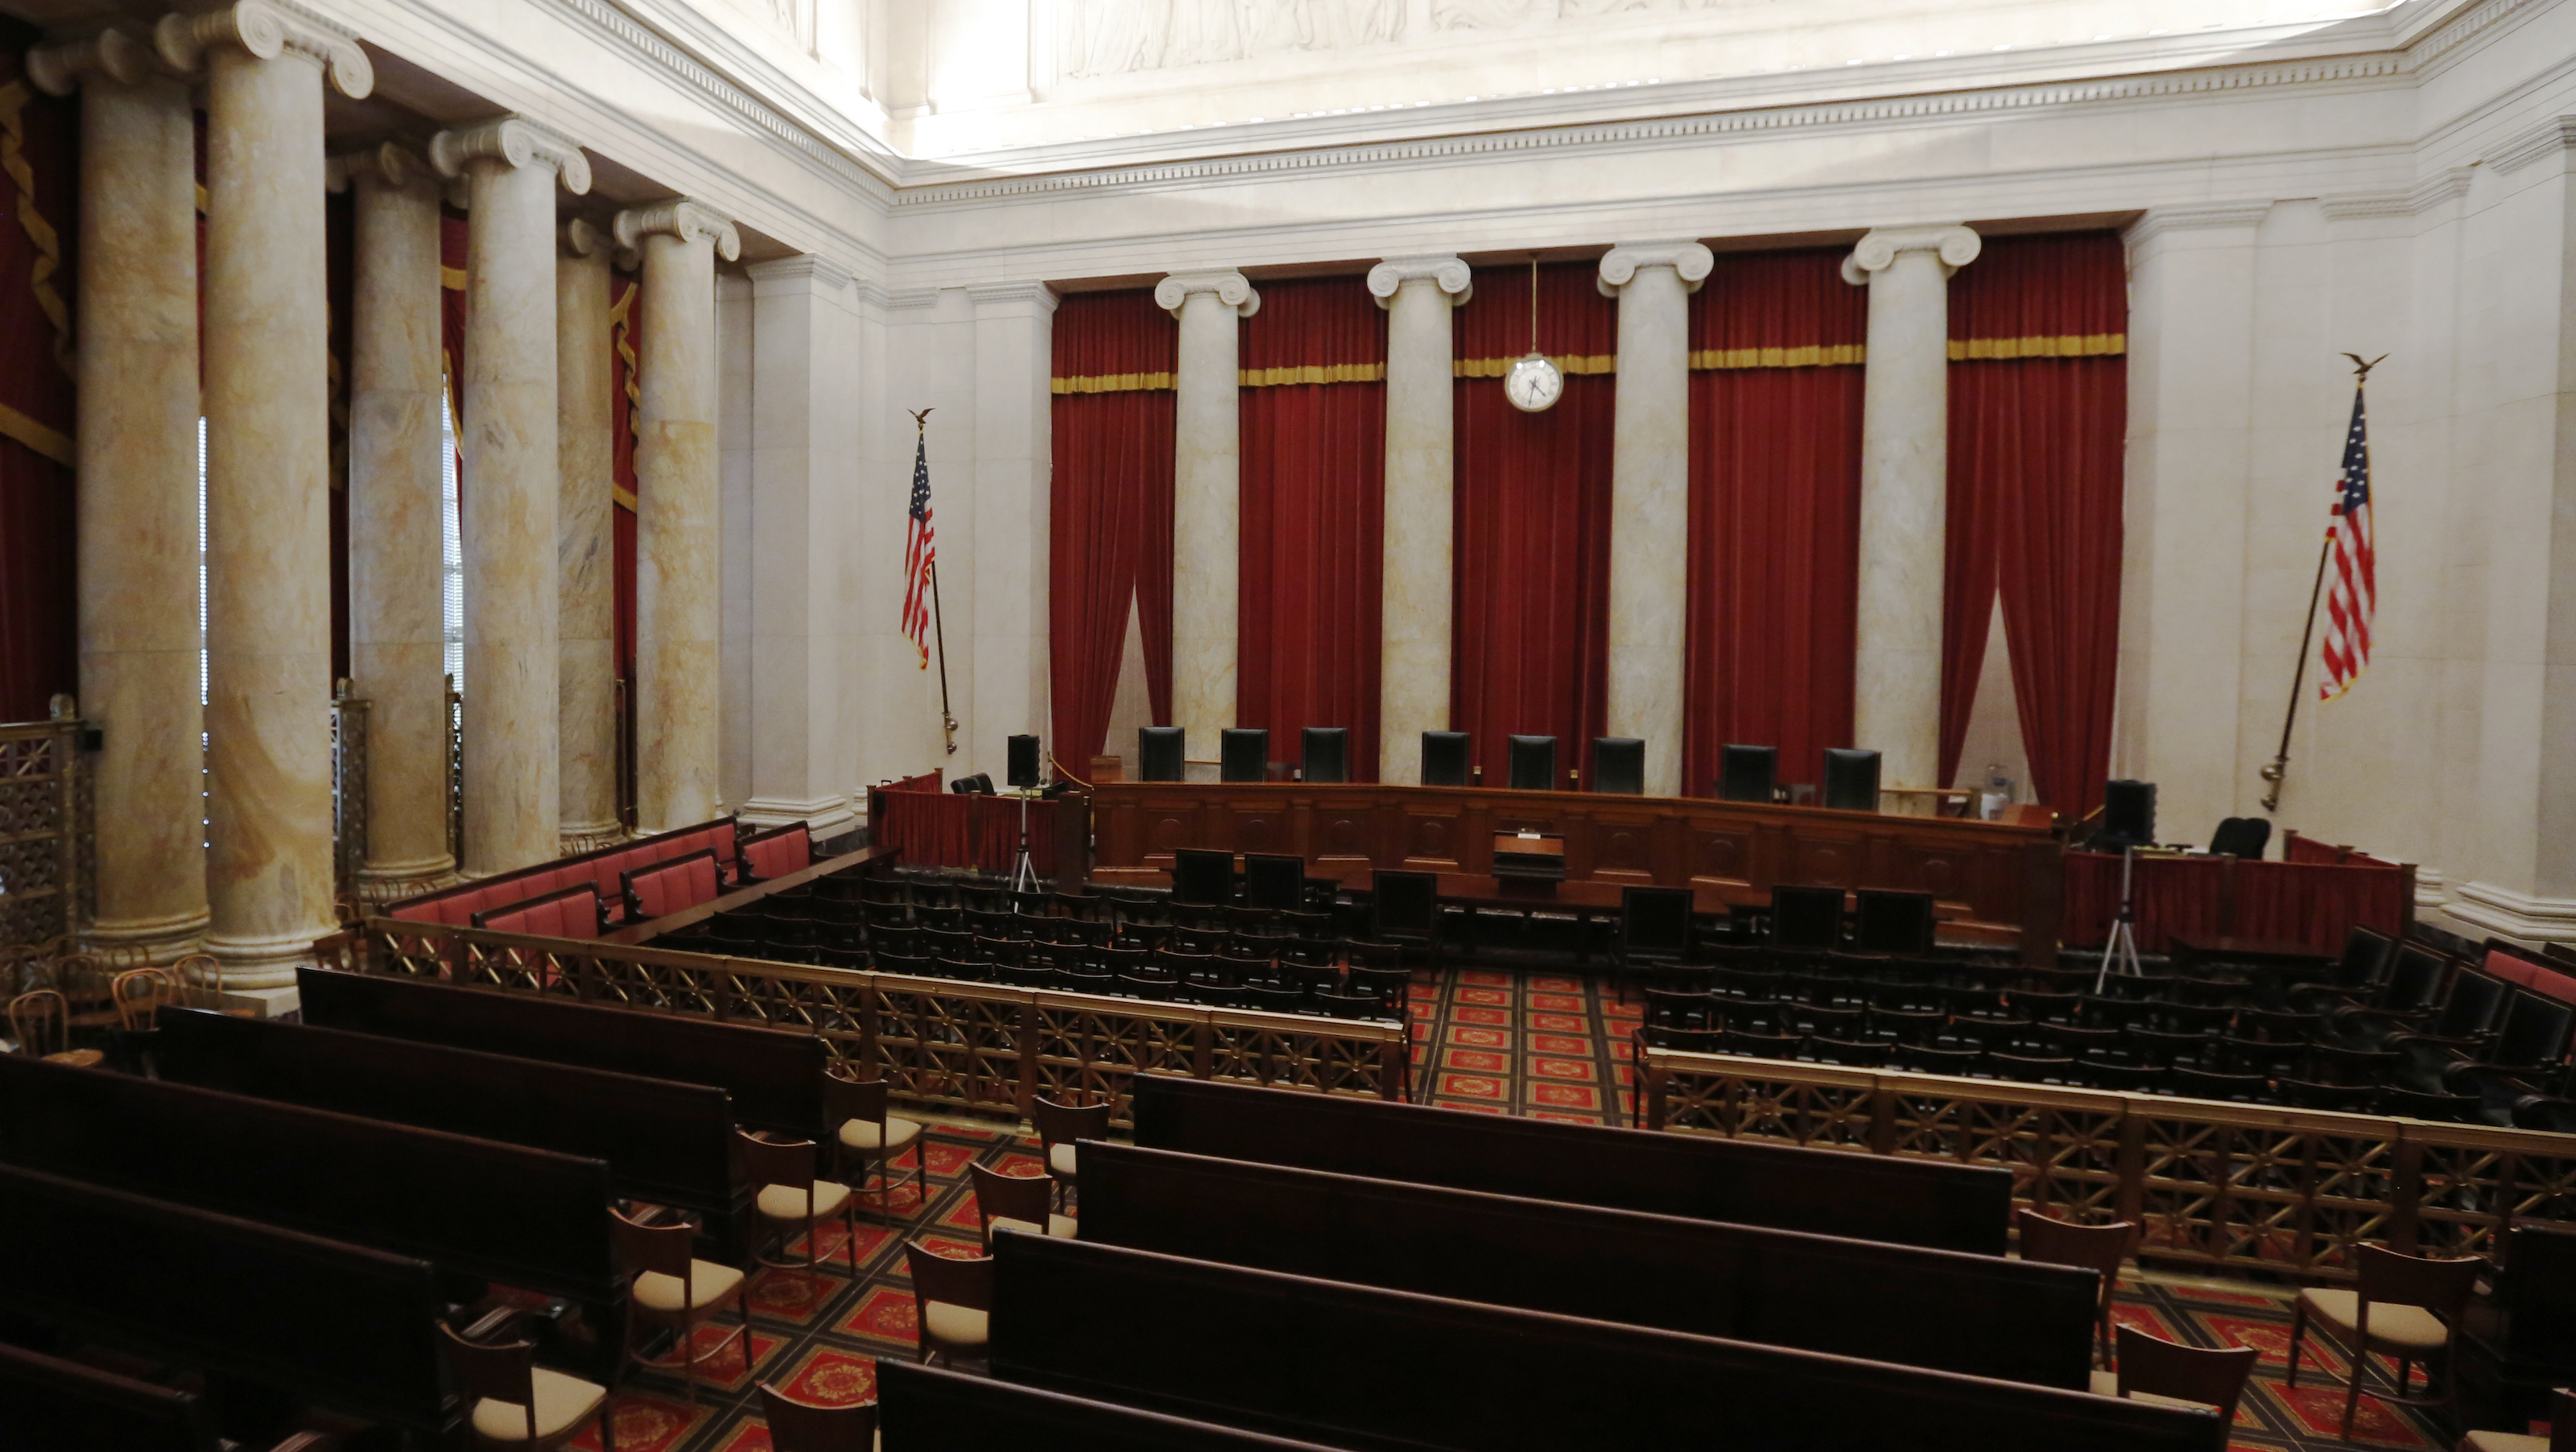 The courtroom of the U.S. Supreme Court is seen in Washington, U.S. on April 4, 2016. REUTERS/Jonathan Ernst/File Photo - RTSORBB